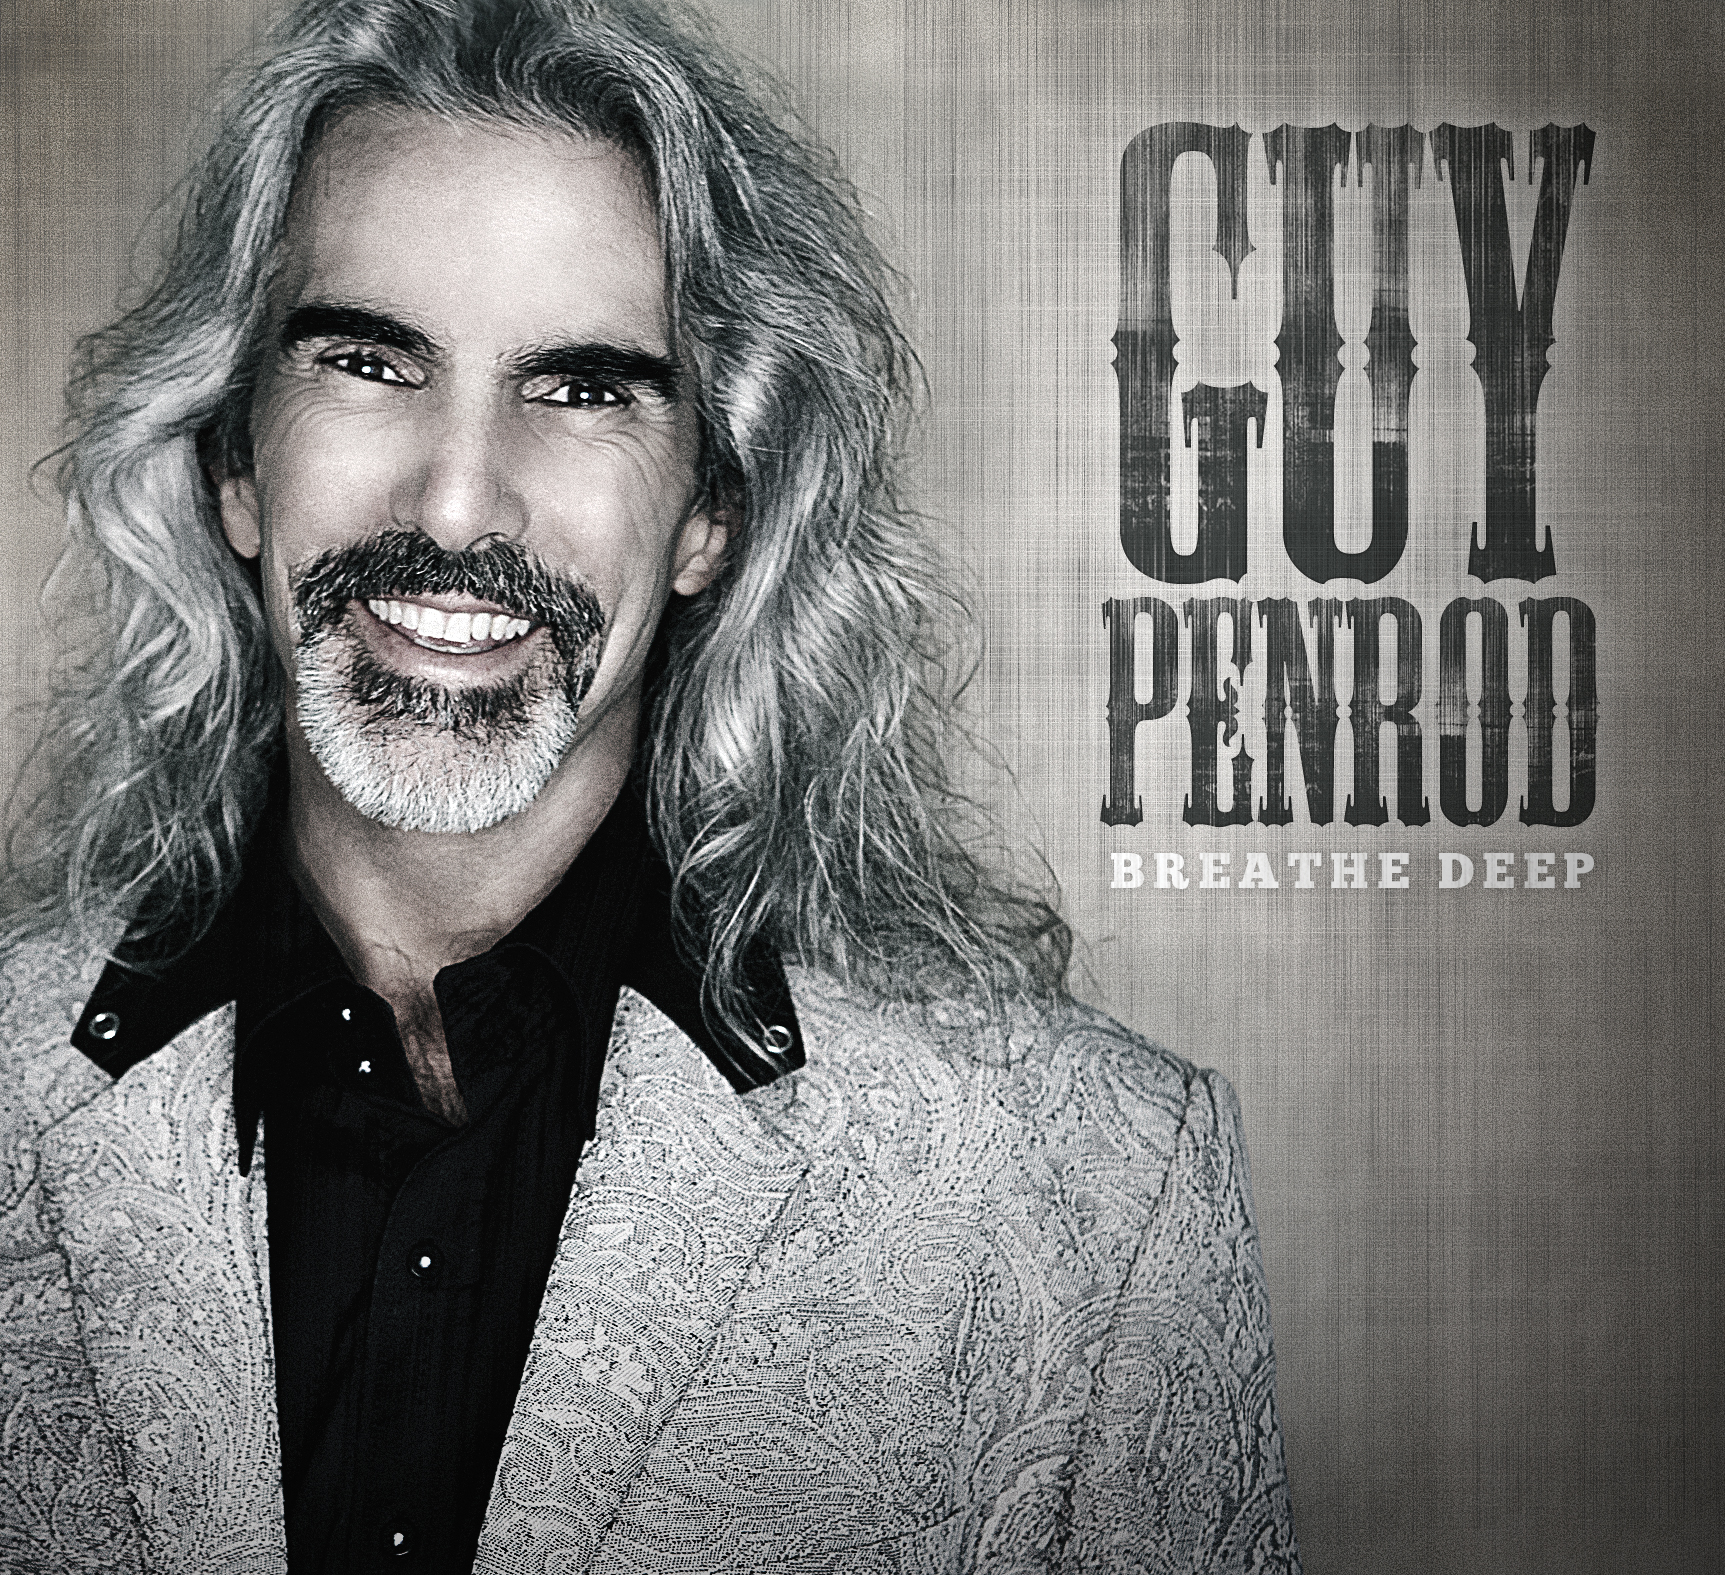 Russian life hack guy penrod